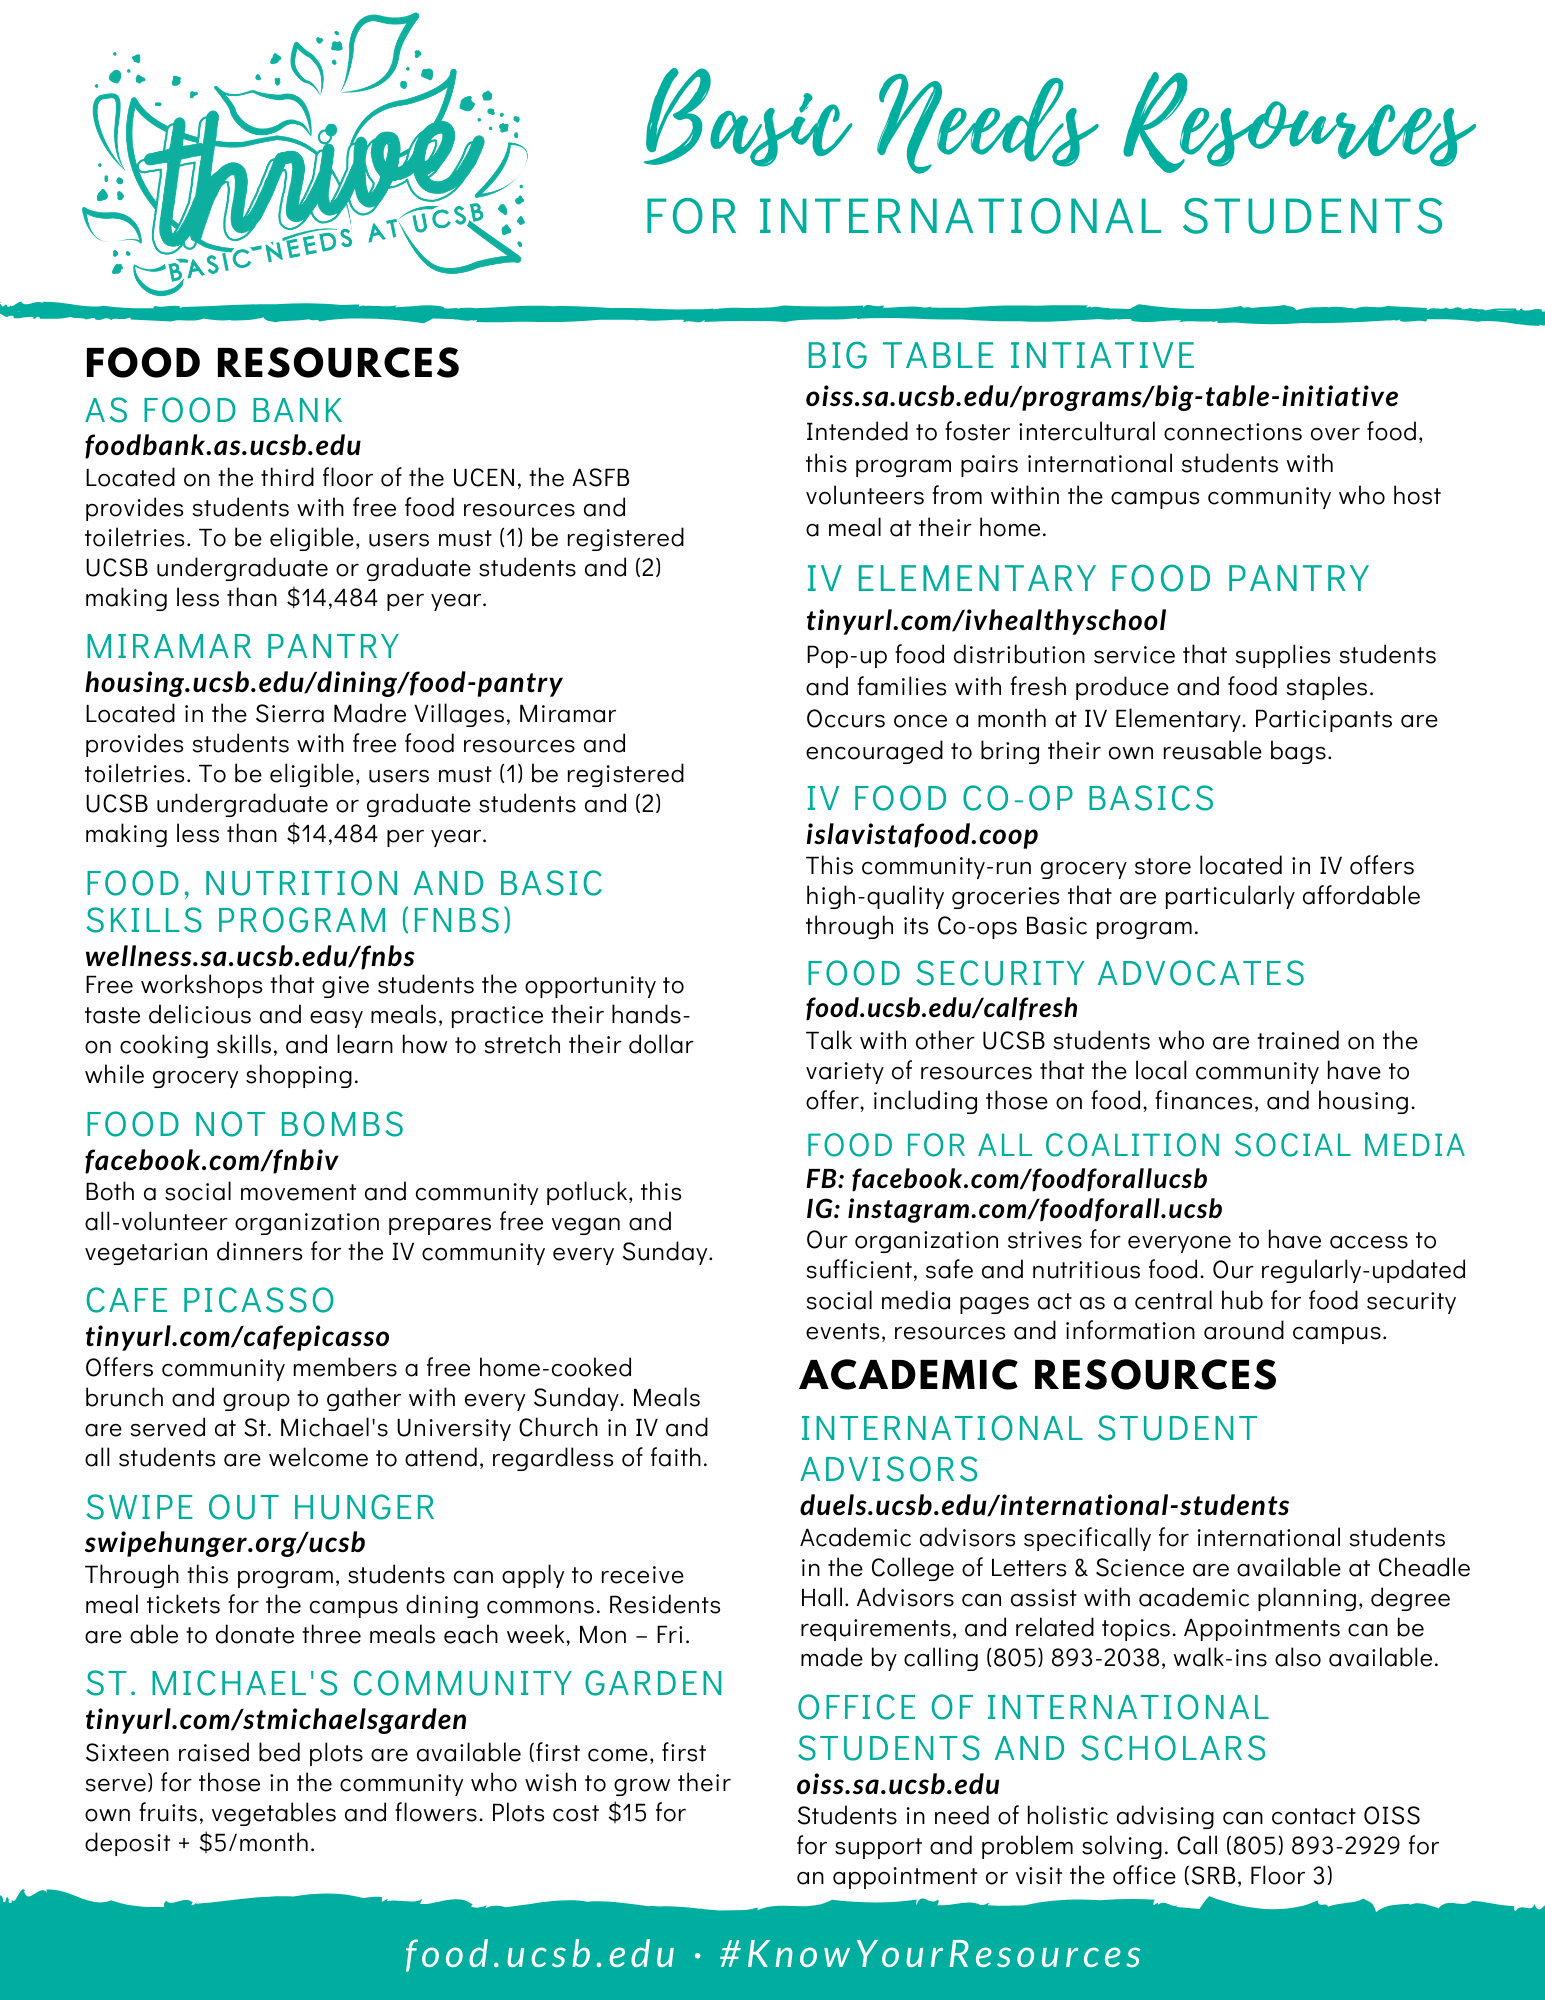 Copy of International Student Resource Guide